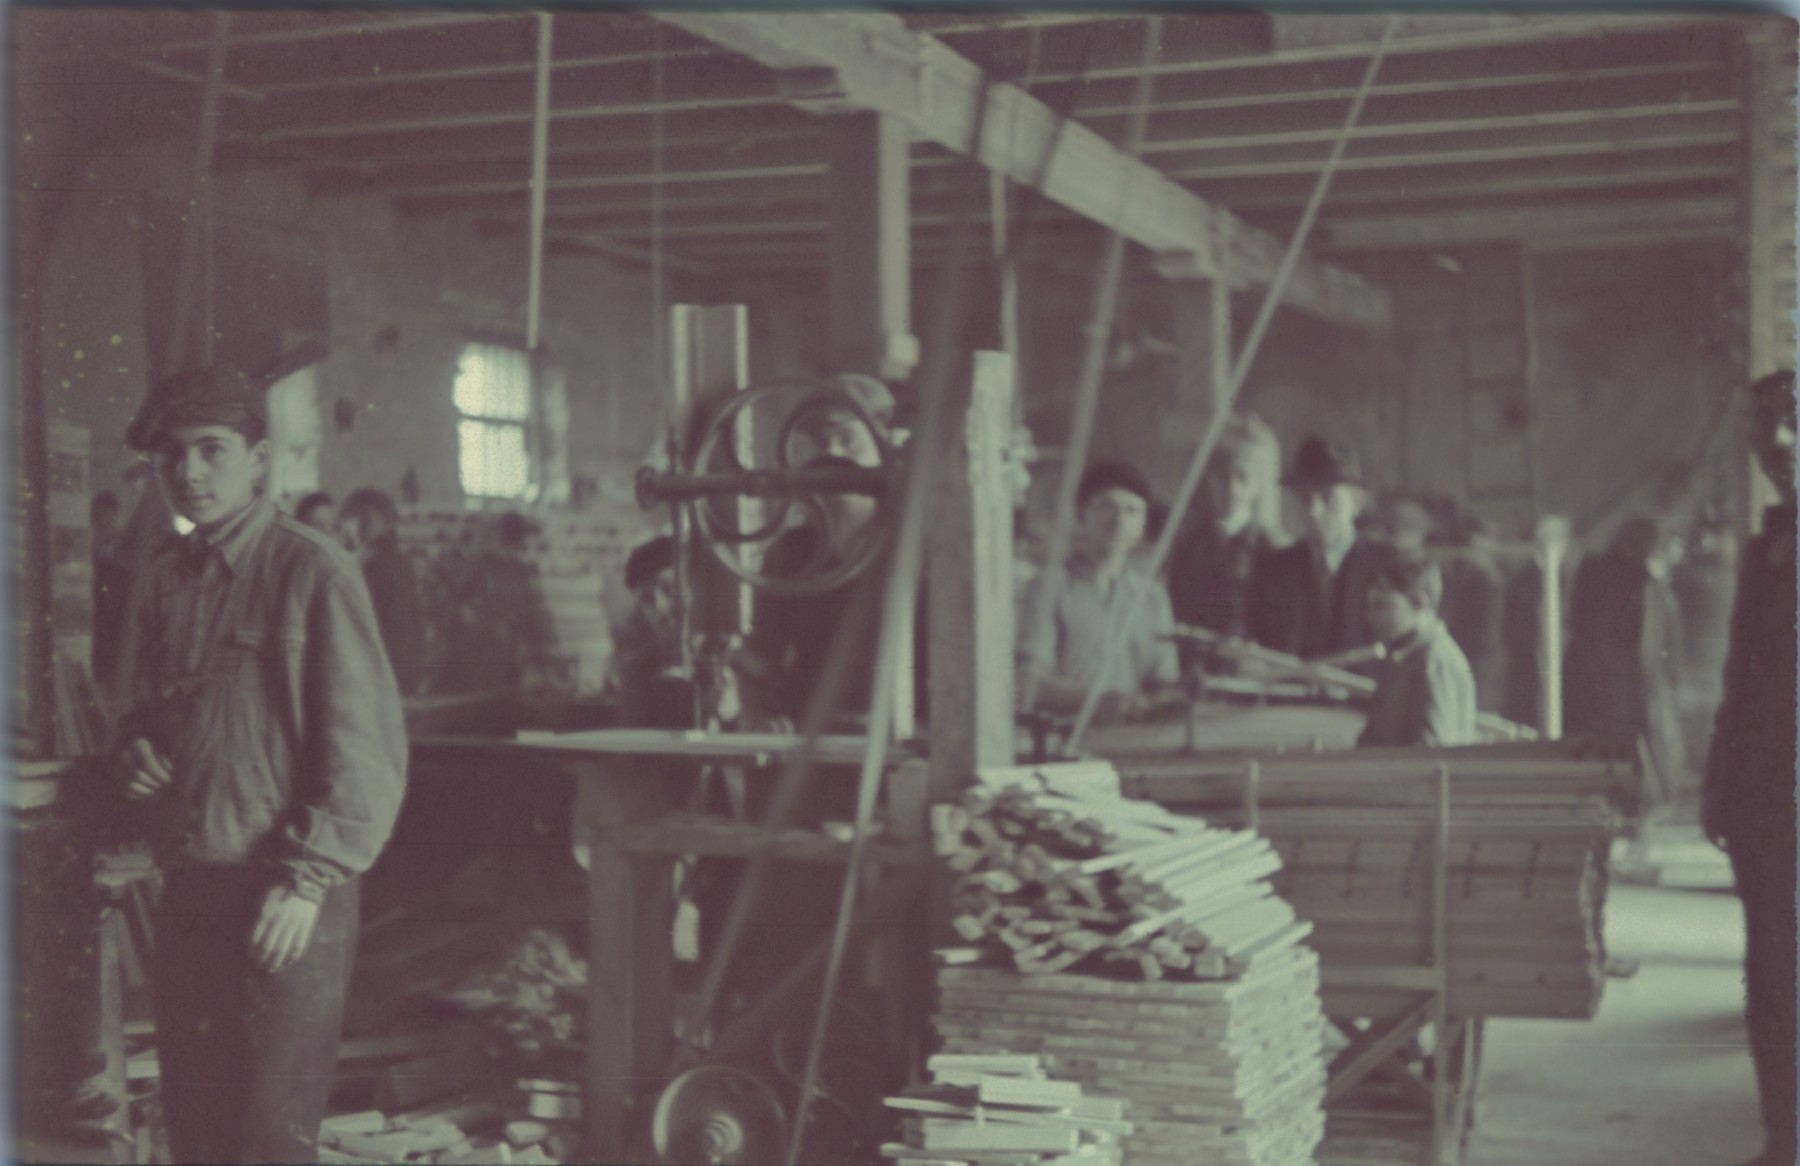 """Wood workers in the furniture factory in the Lodz ghetto.  Original German caption: """"Litzmannstadt Getto, Moebelfabrik"""" (furniture factory), #13 (number blurry and hard to read)."""